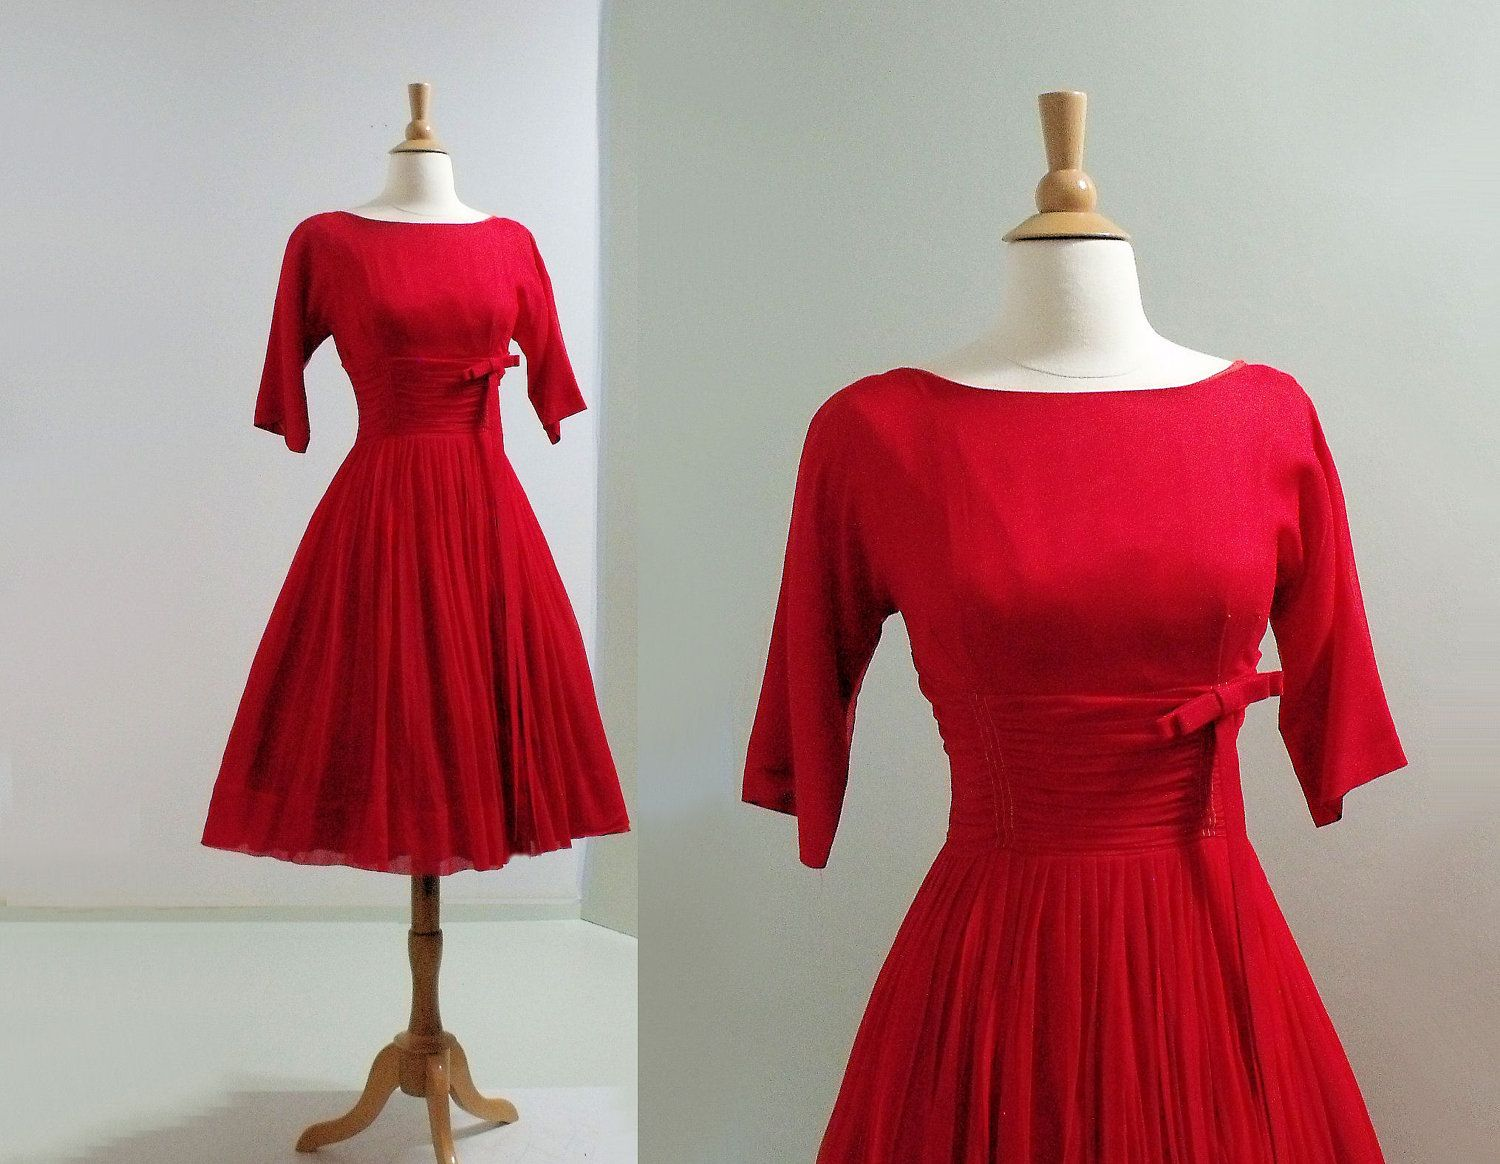 1960s Dress Red Chiffon Bust 34 Vintage Christmas Dress 108 00 Via Etsy I M So In Love With This Dress Red Chiffon Dress Vintage Dresses Red Dress [ 1164 x 1500 Pixel ]